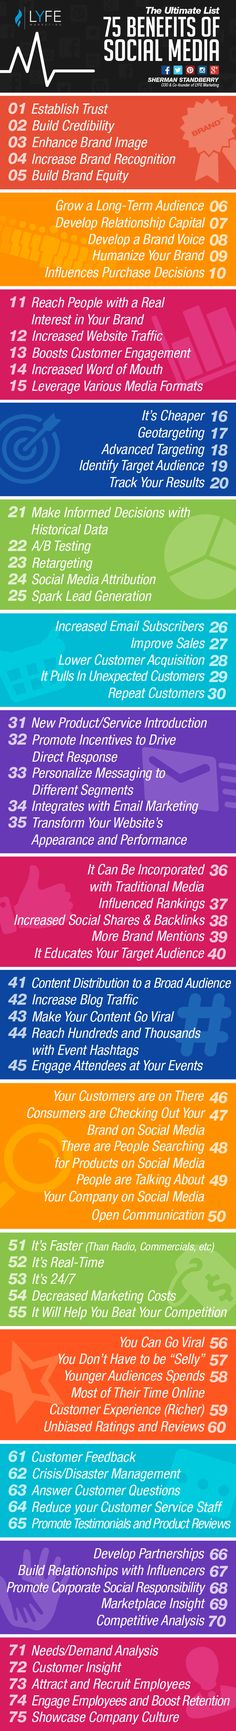 Are you growing your business on social media? Learn ALL of the benefits of marketing. Here are 75 key benefits that directly contribute to the ROI of social media! Marketing Trends, Business Marketing, Content Marketing, Online Marketing, Social Media Marketing, Business Tips, Affiliate Marketing, Tourism Marketing, Fashion Marketing